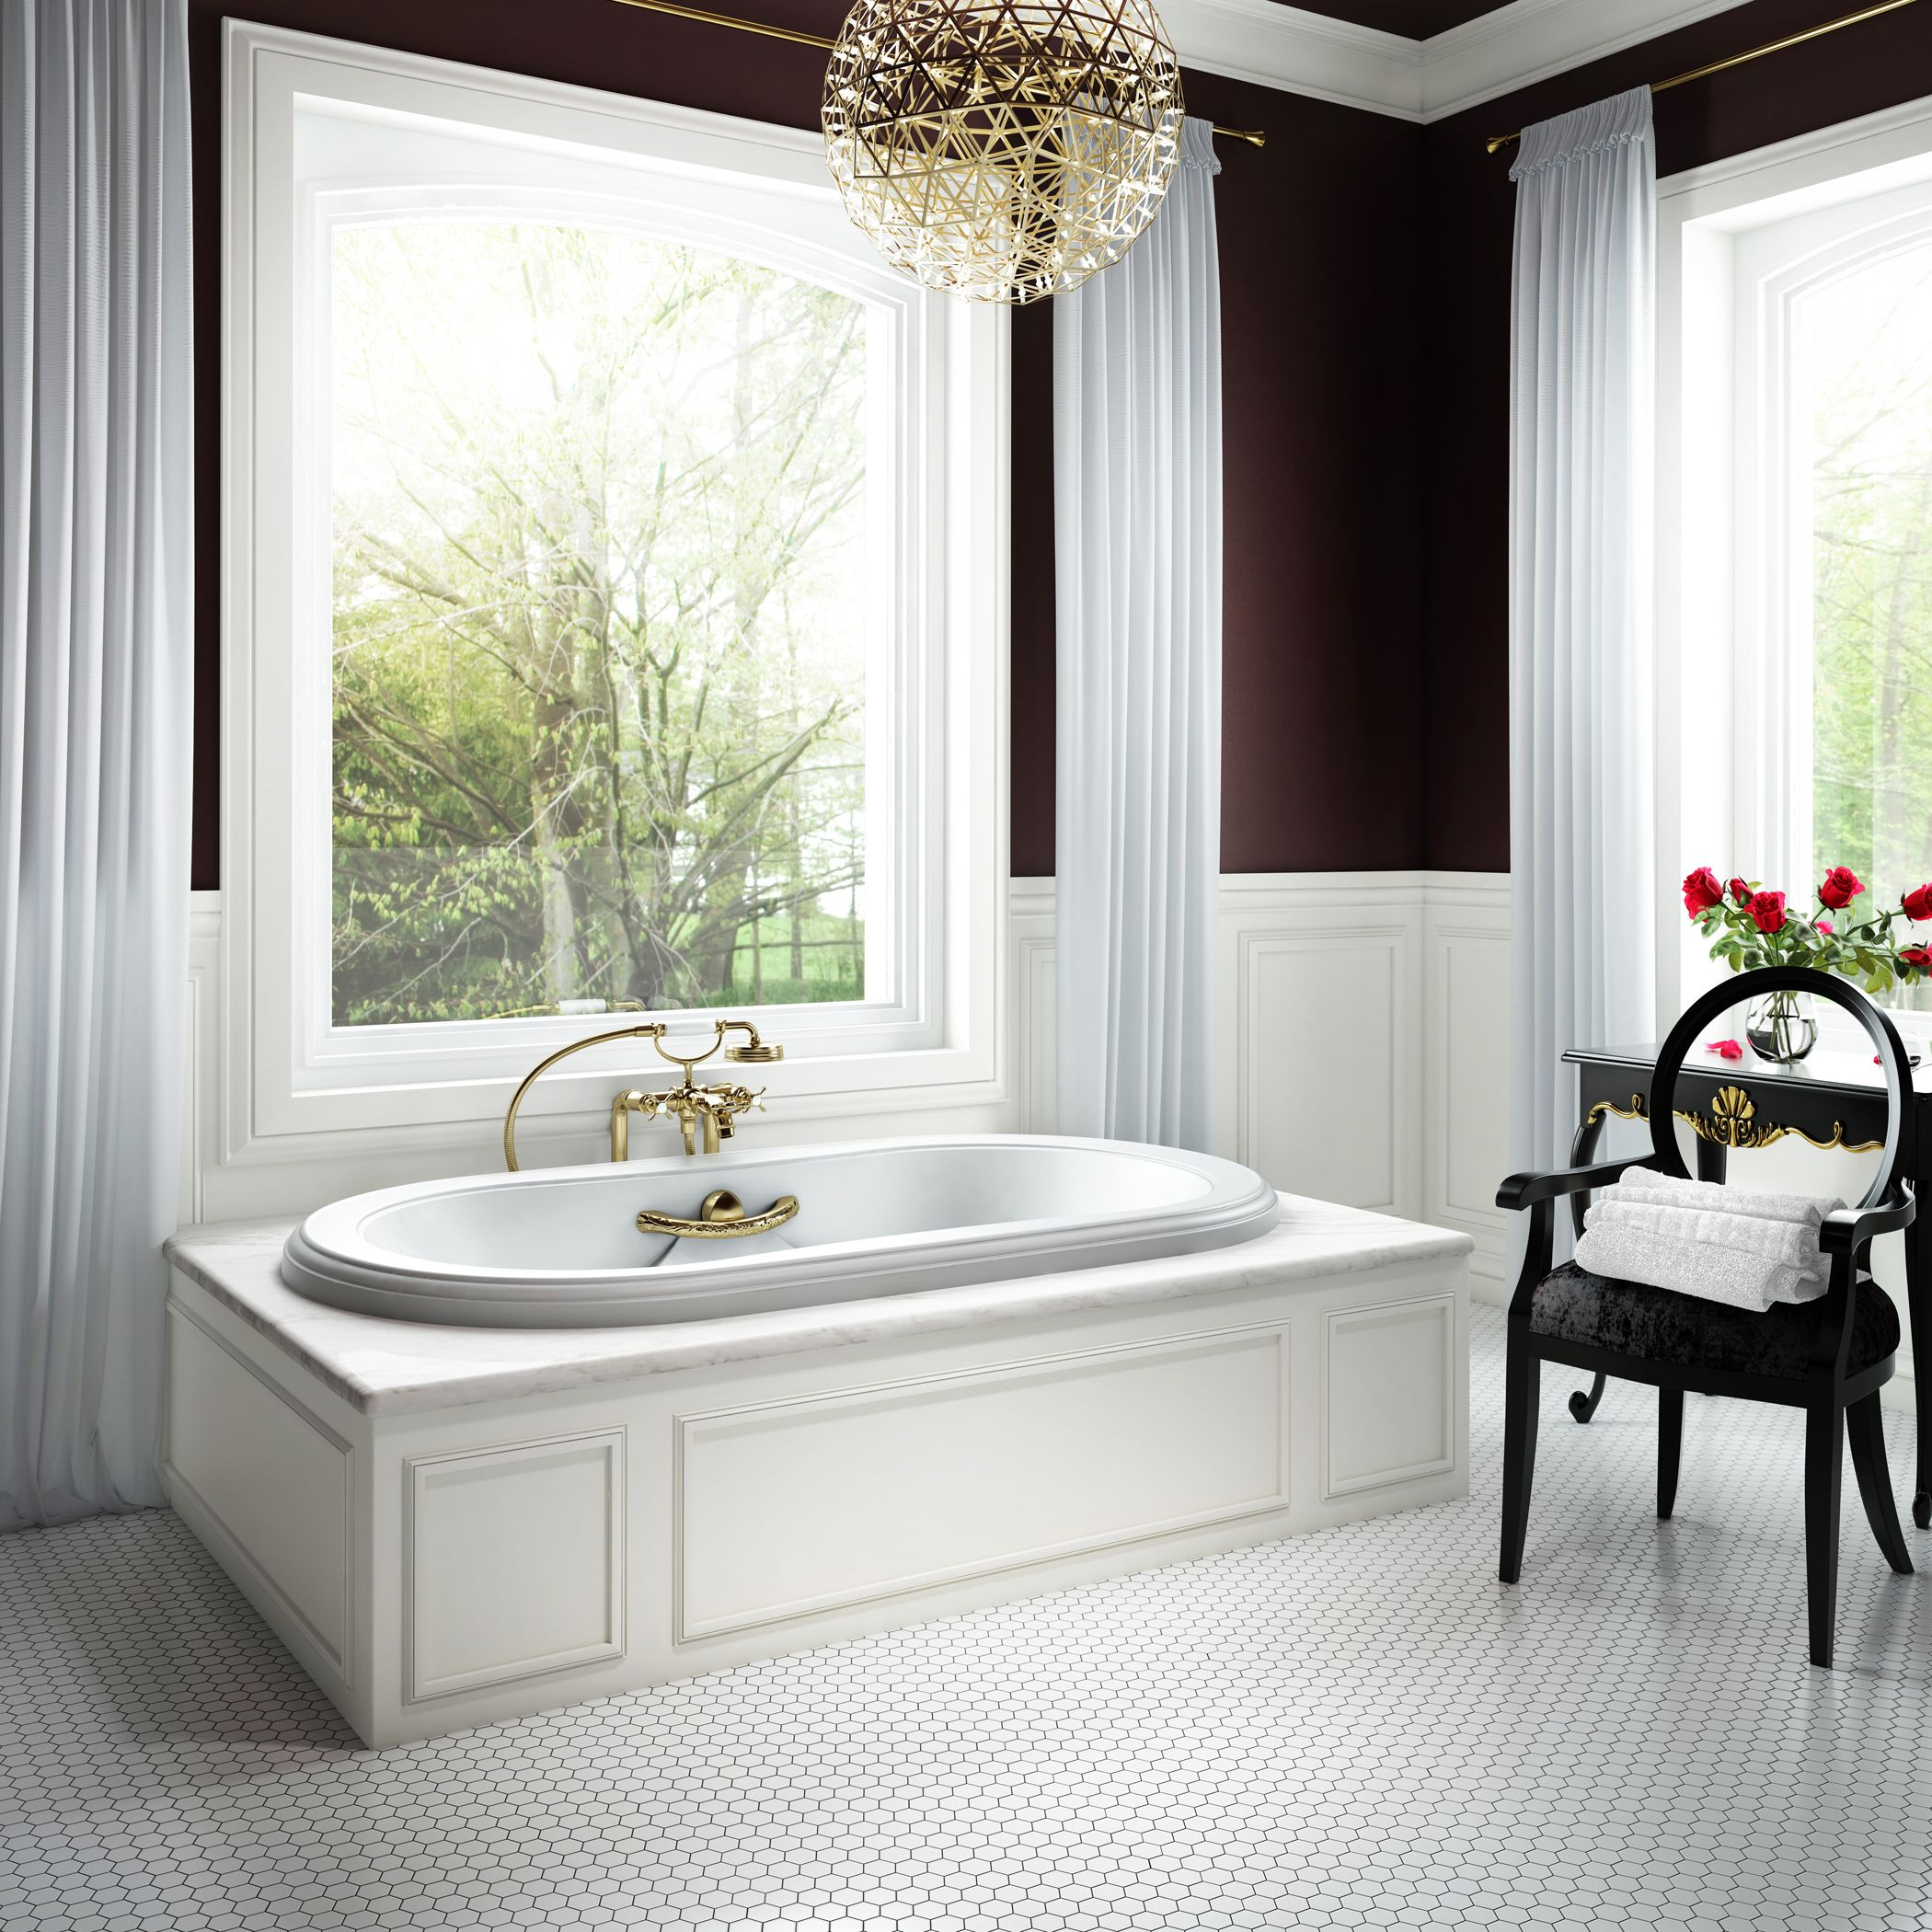 The Elegancia Bathtub Collection Has The Perfect Name To Express - Express bathrooms